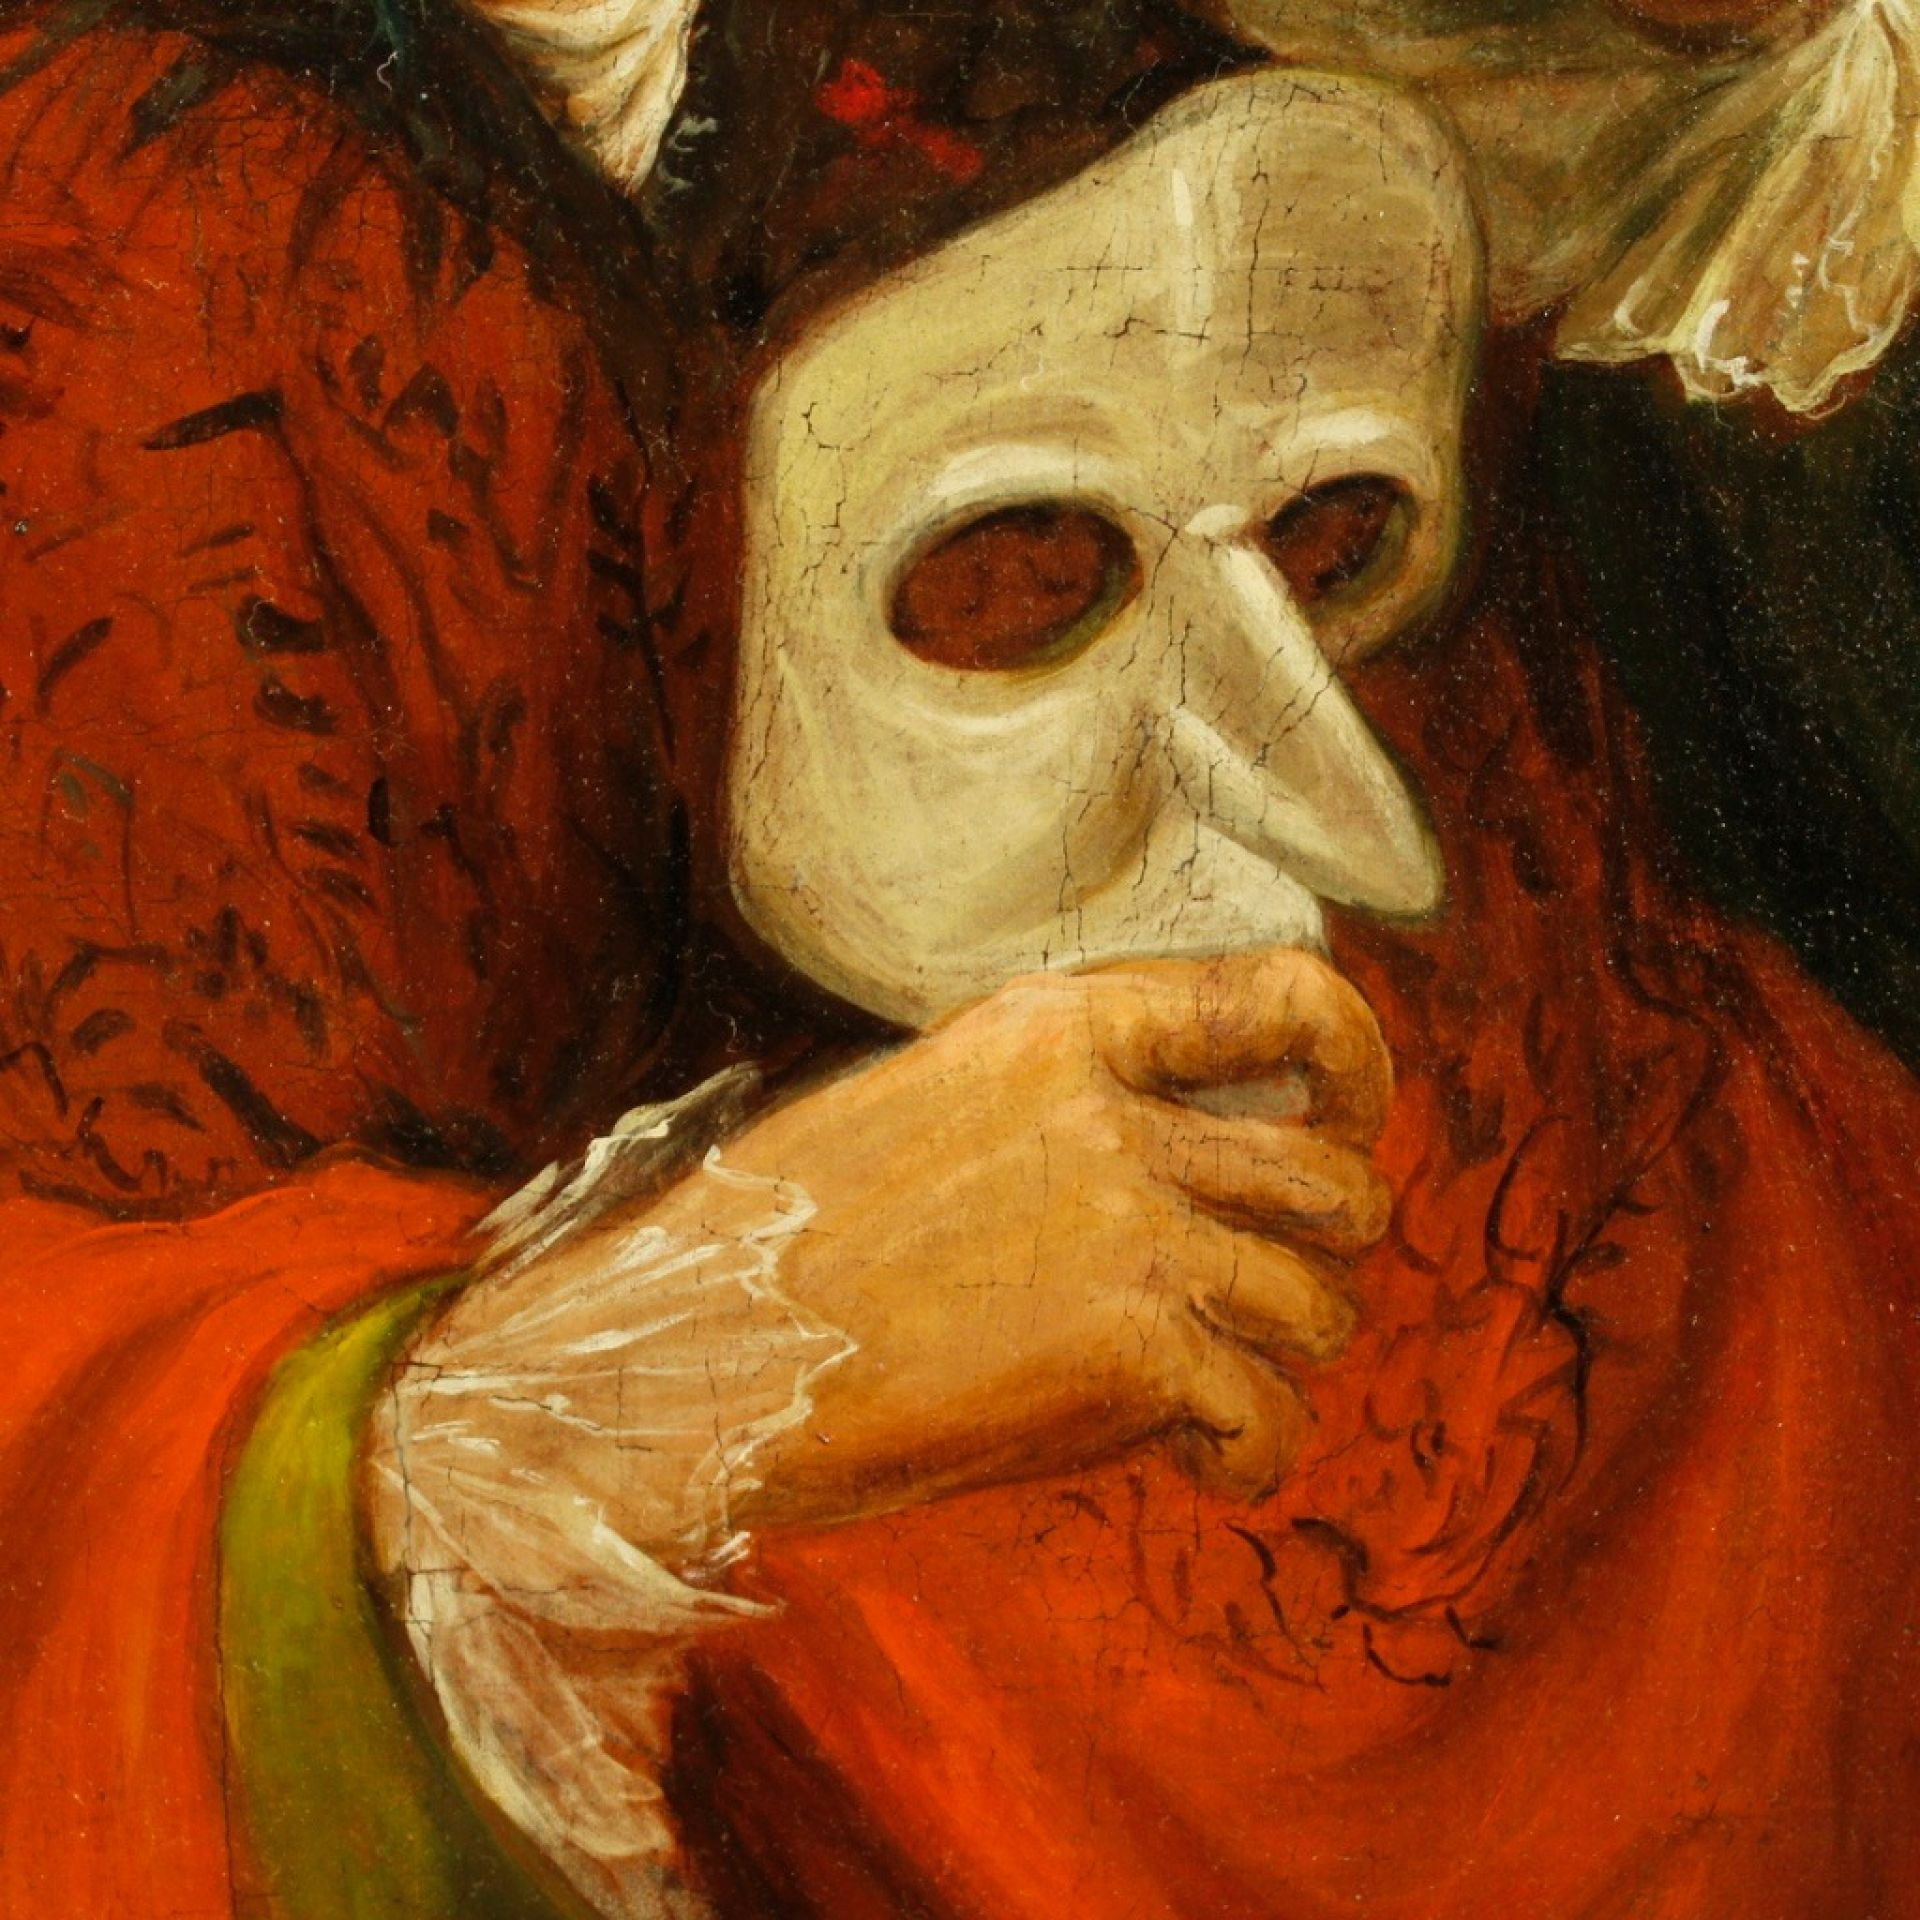 19th Century Antique Oil On Canvas Italian With Carnival Mask Painting, 1870